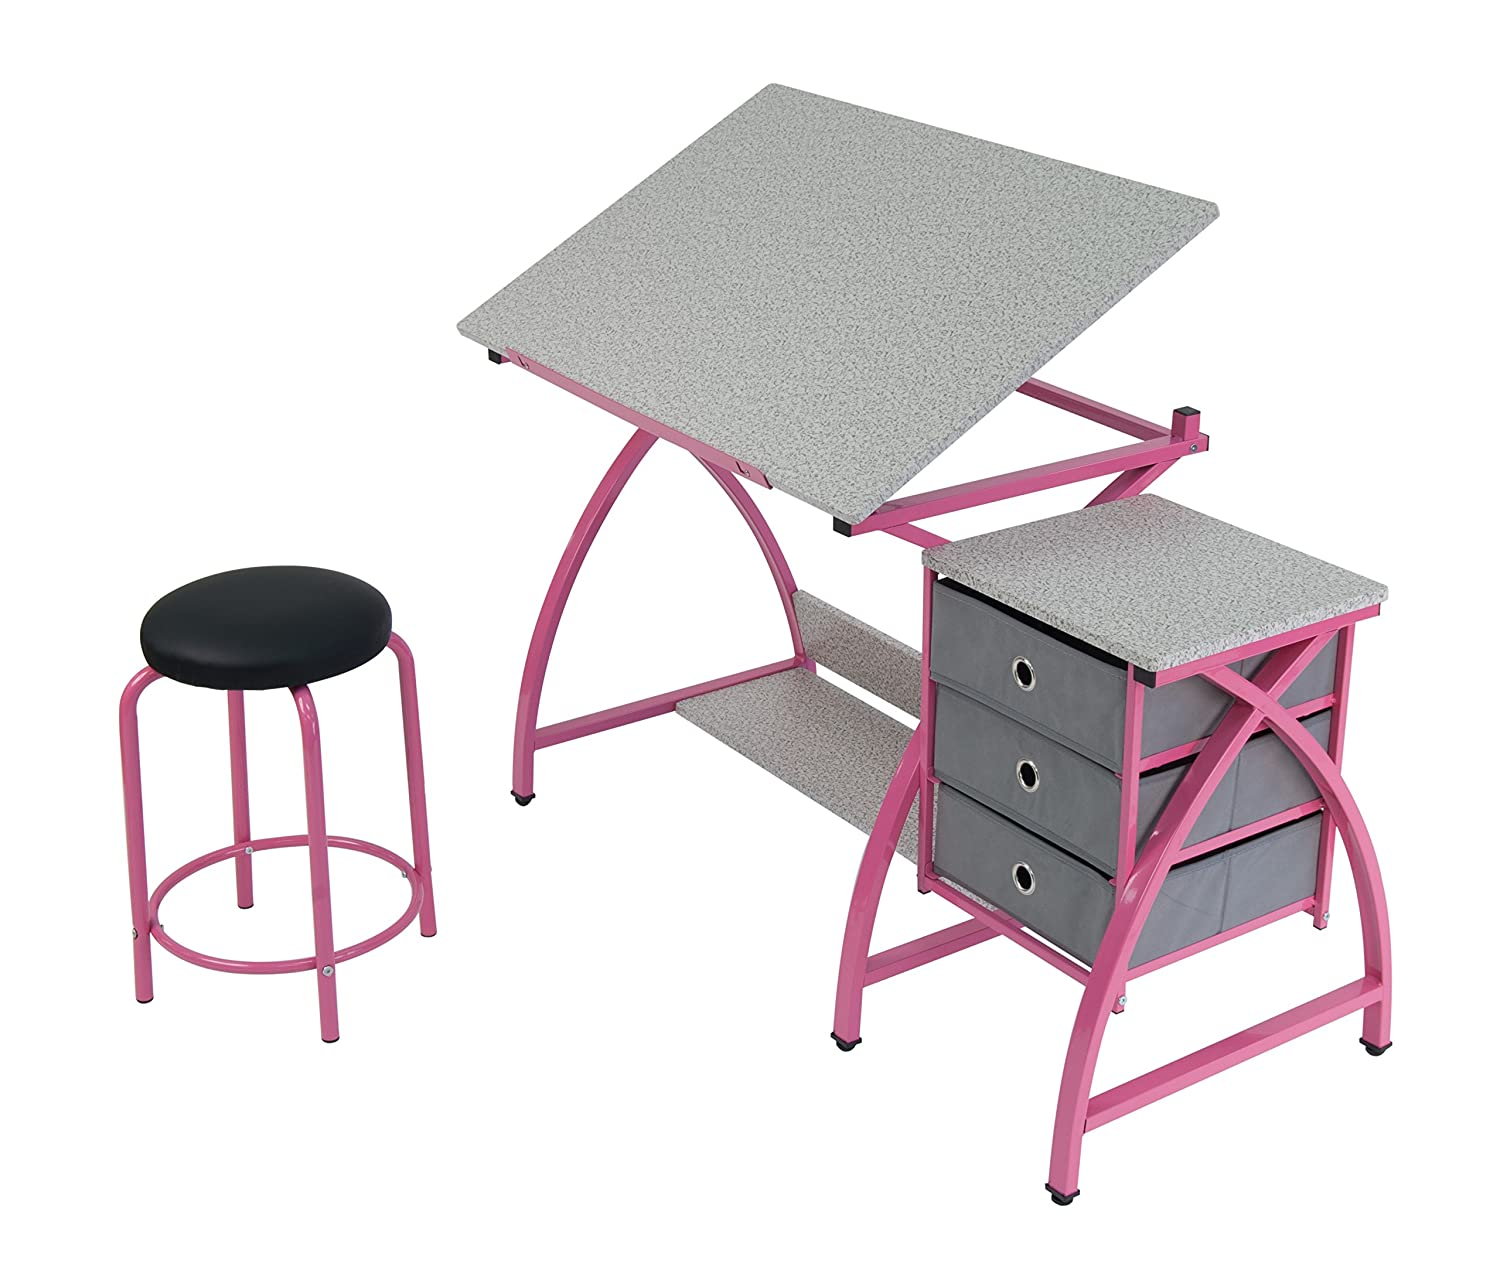 sc 1 st  Amazon.com & Amazon.com: Comet Center with Stool in Pink / Spatter Gray islam-shia.org